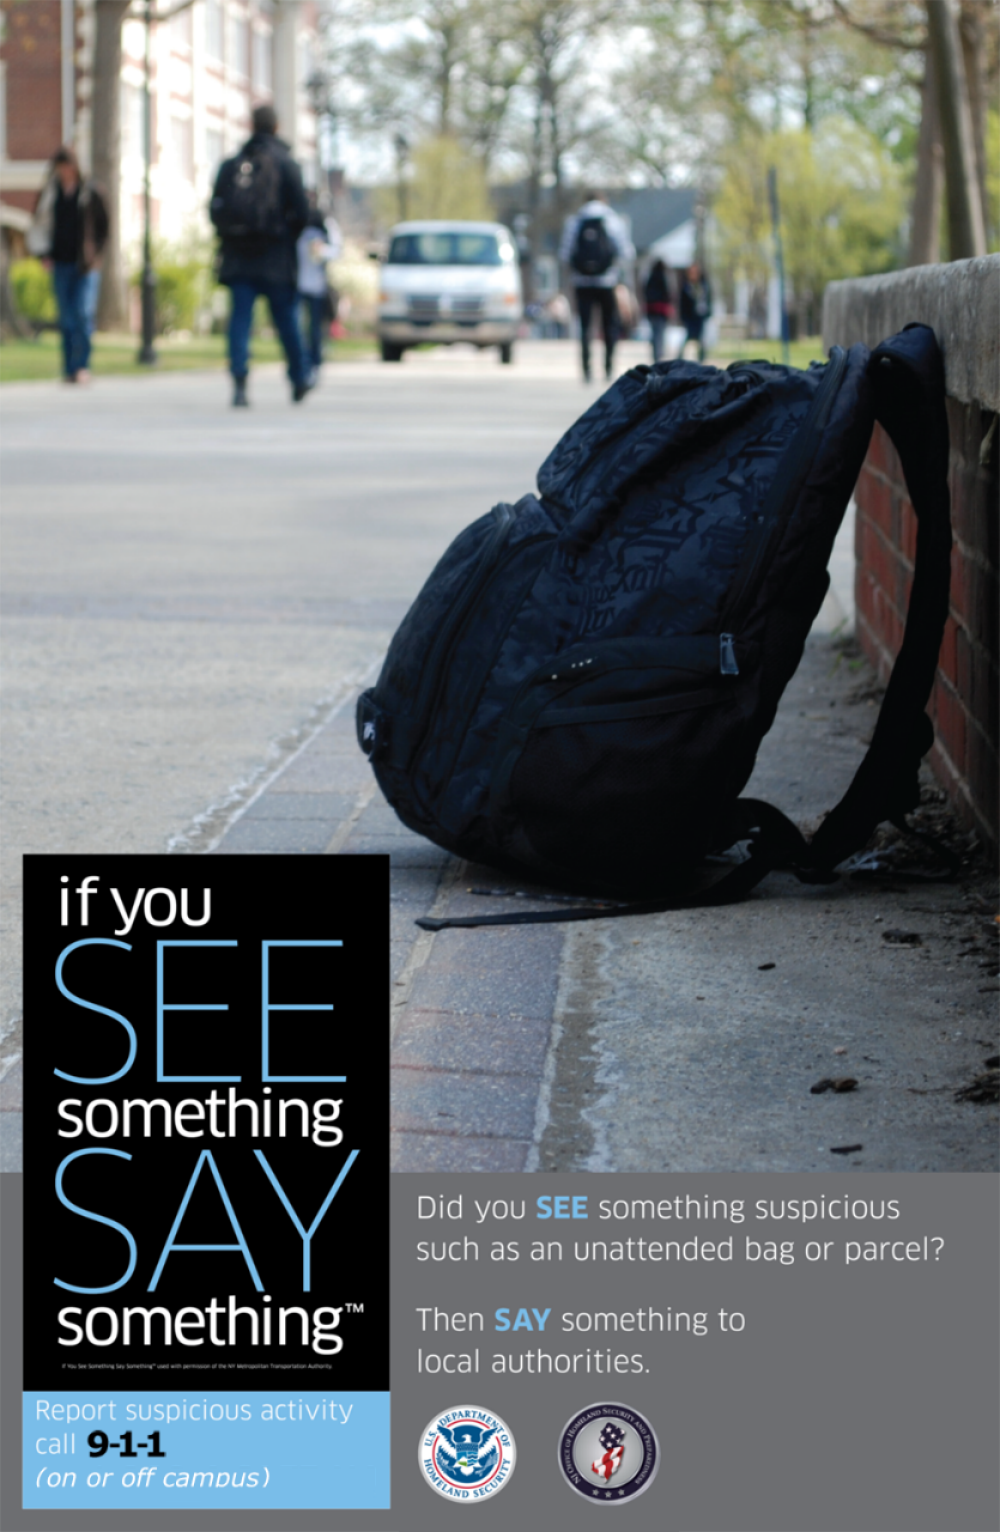 See Something, Say Something, on or off campus